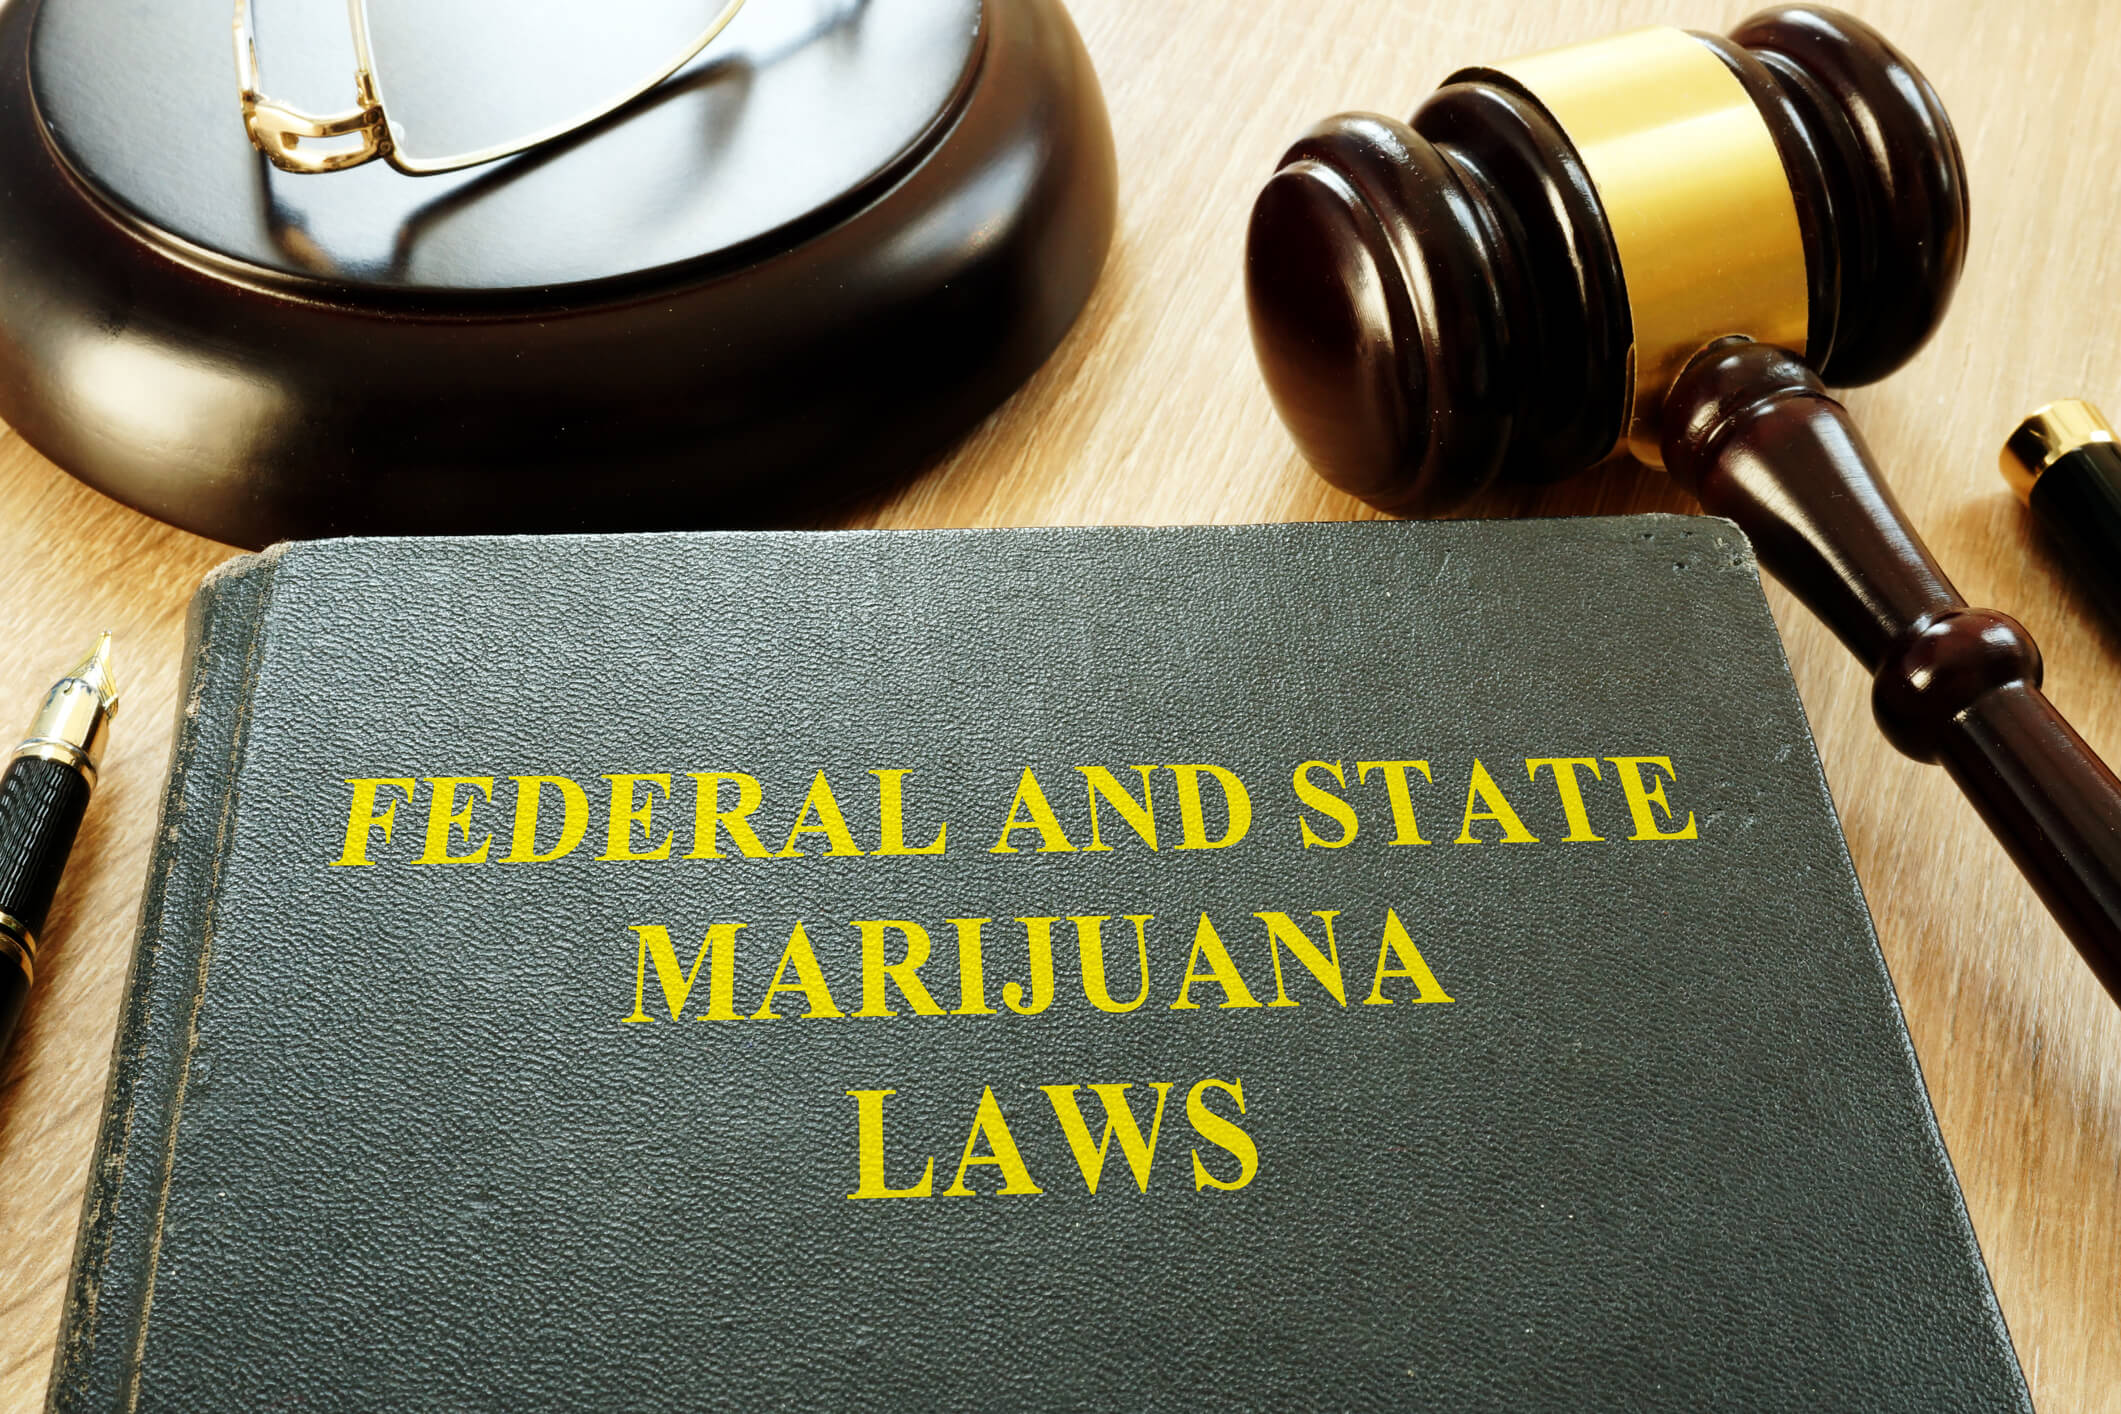 marijuana-possession-defense-in-tennessee-john-p-webb-criminal-defense-attorney-nashville-tennessee